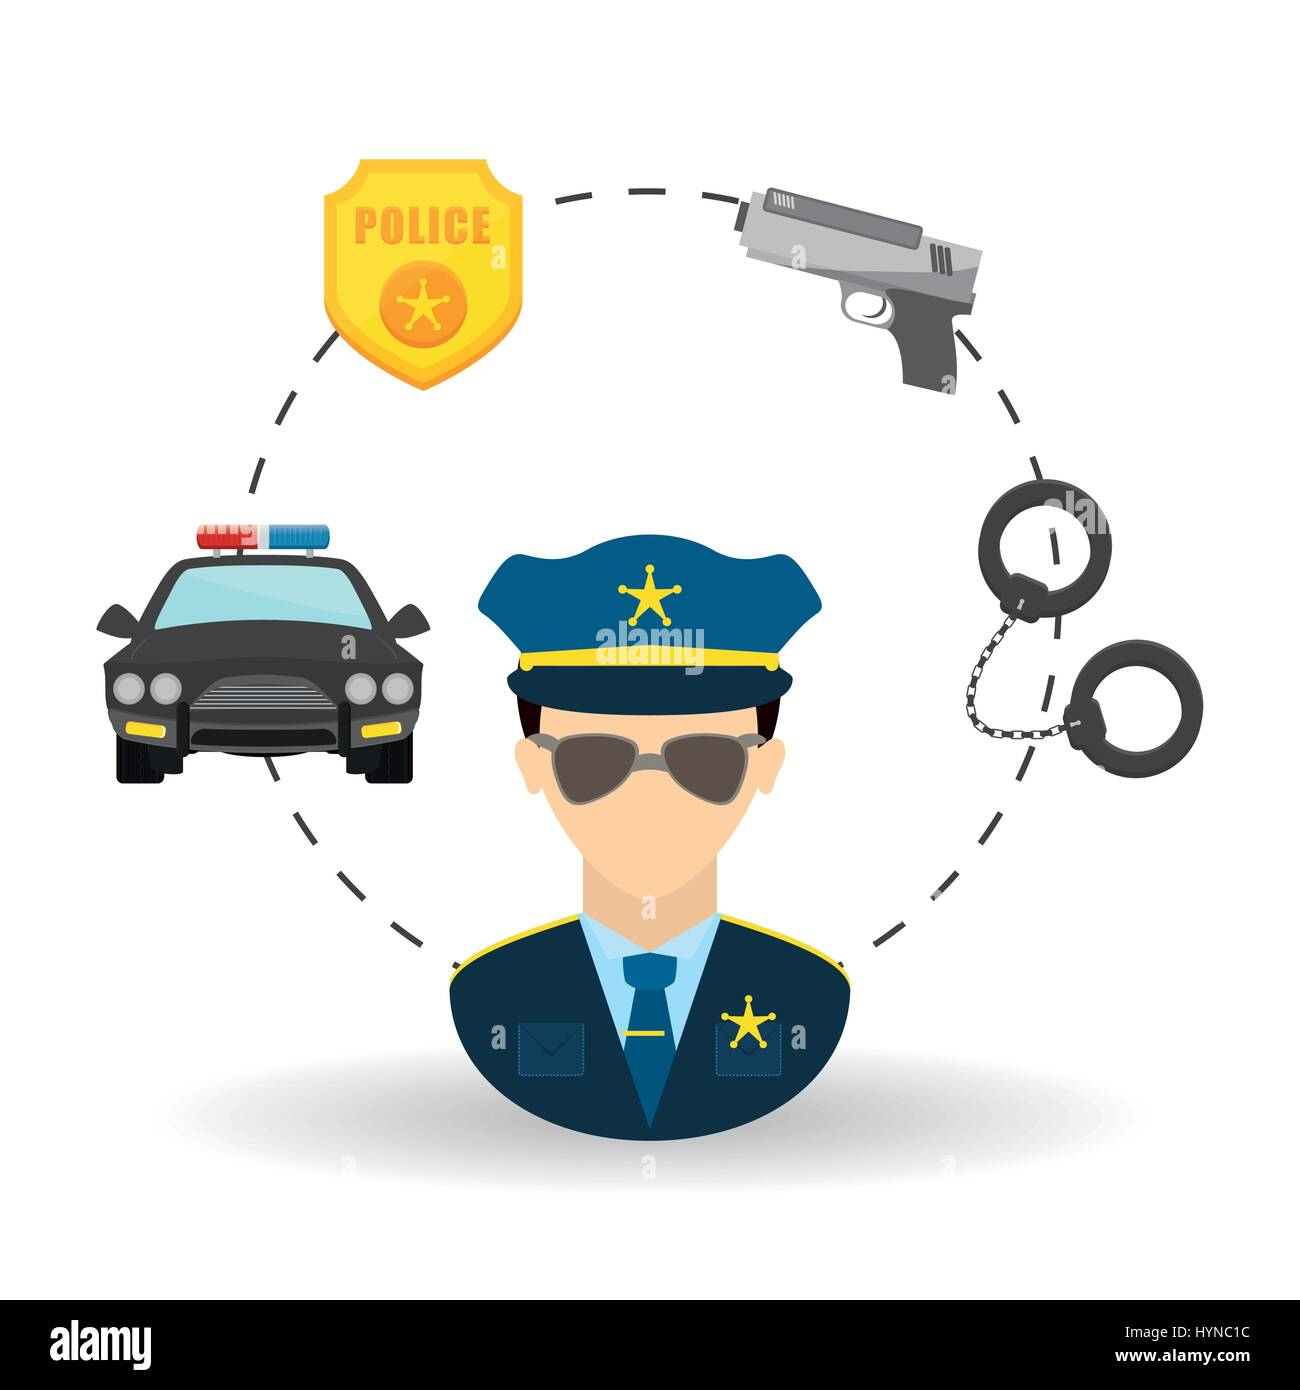 Police concept with icon design, vector illustration 10 eps graphic. - Stock Image